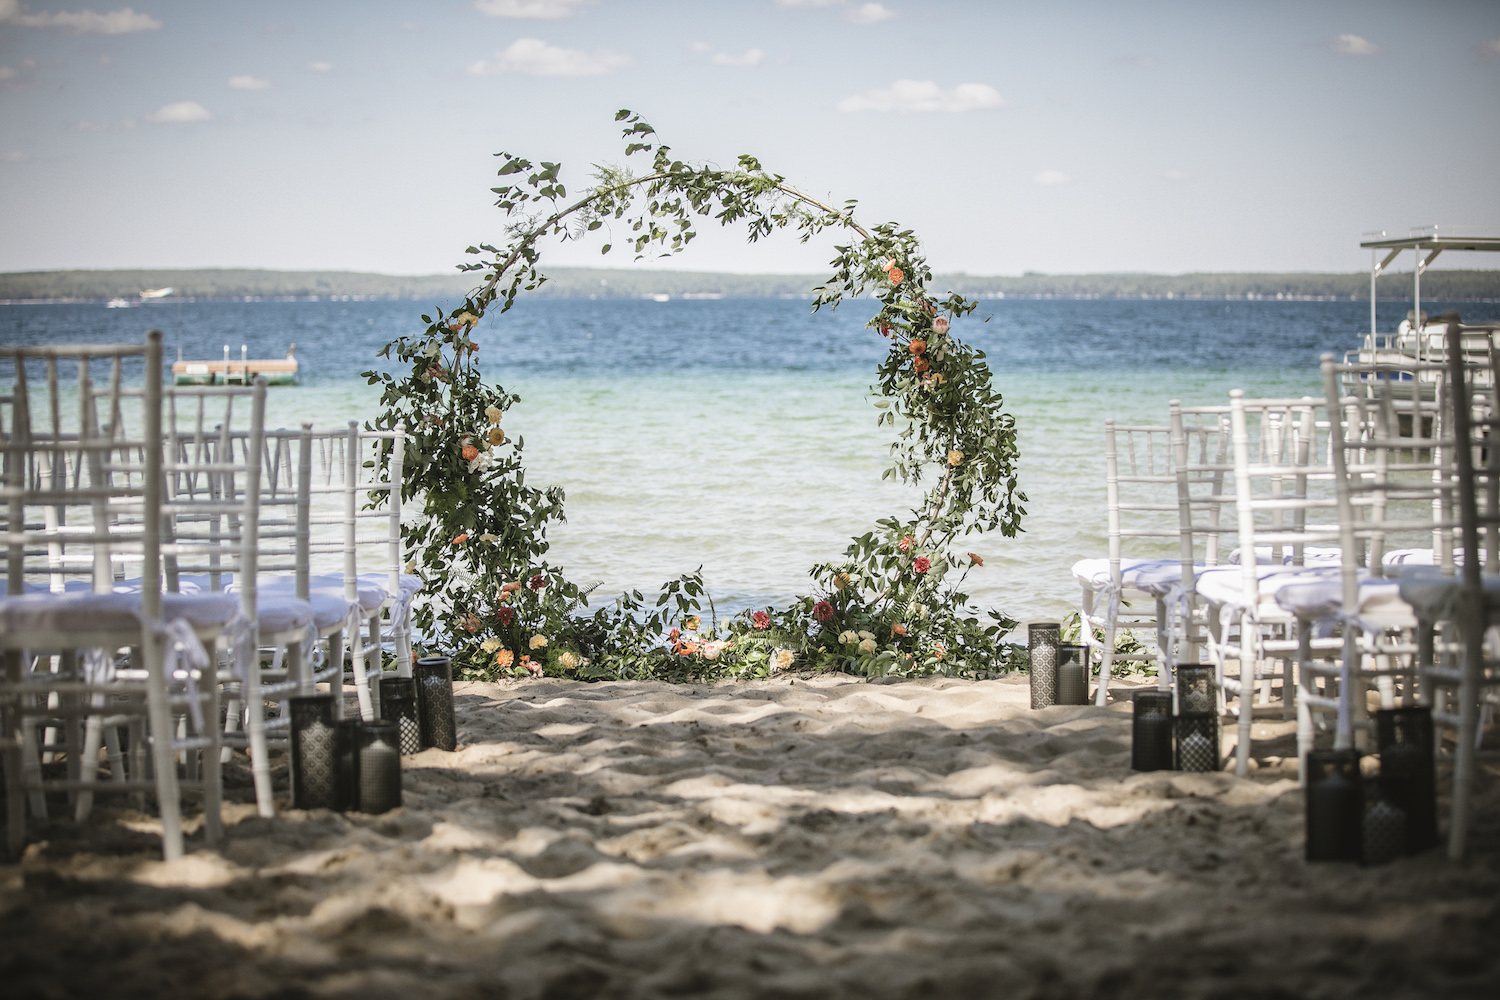 Ceremony lakeside with floral hoop